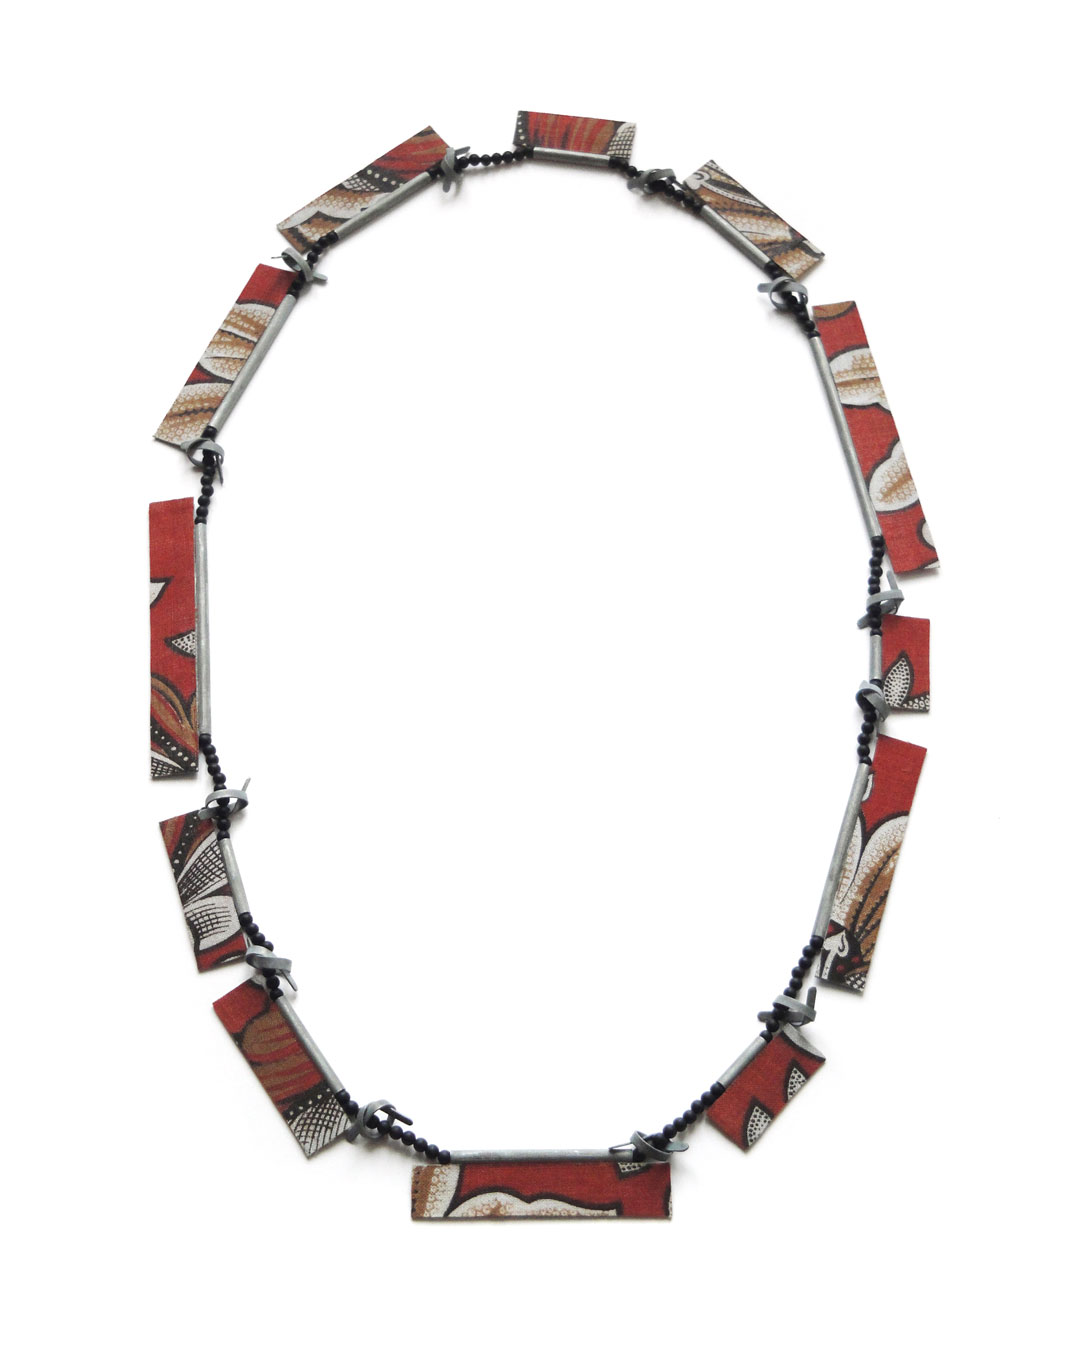 Lucy Sarneel, Two of a Kind, 2013, necklace; antique textile, onyx, acrylic paint, varnish, nylon thread, 320 x 180 x 6 mm, €1200